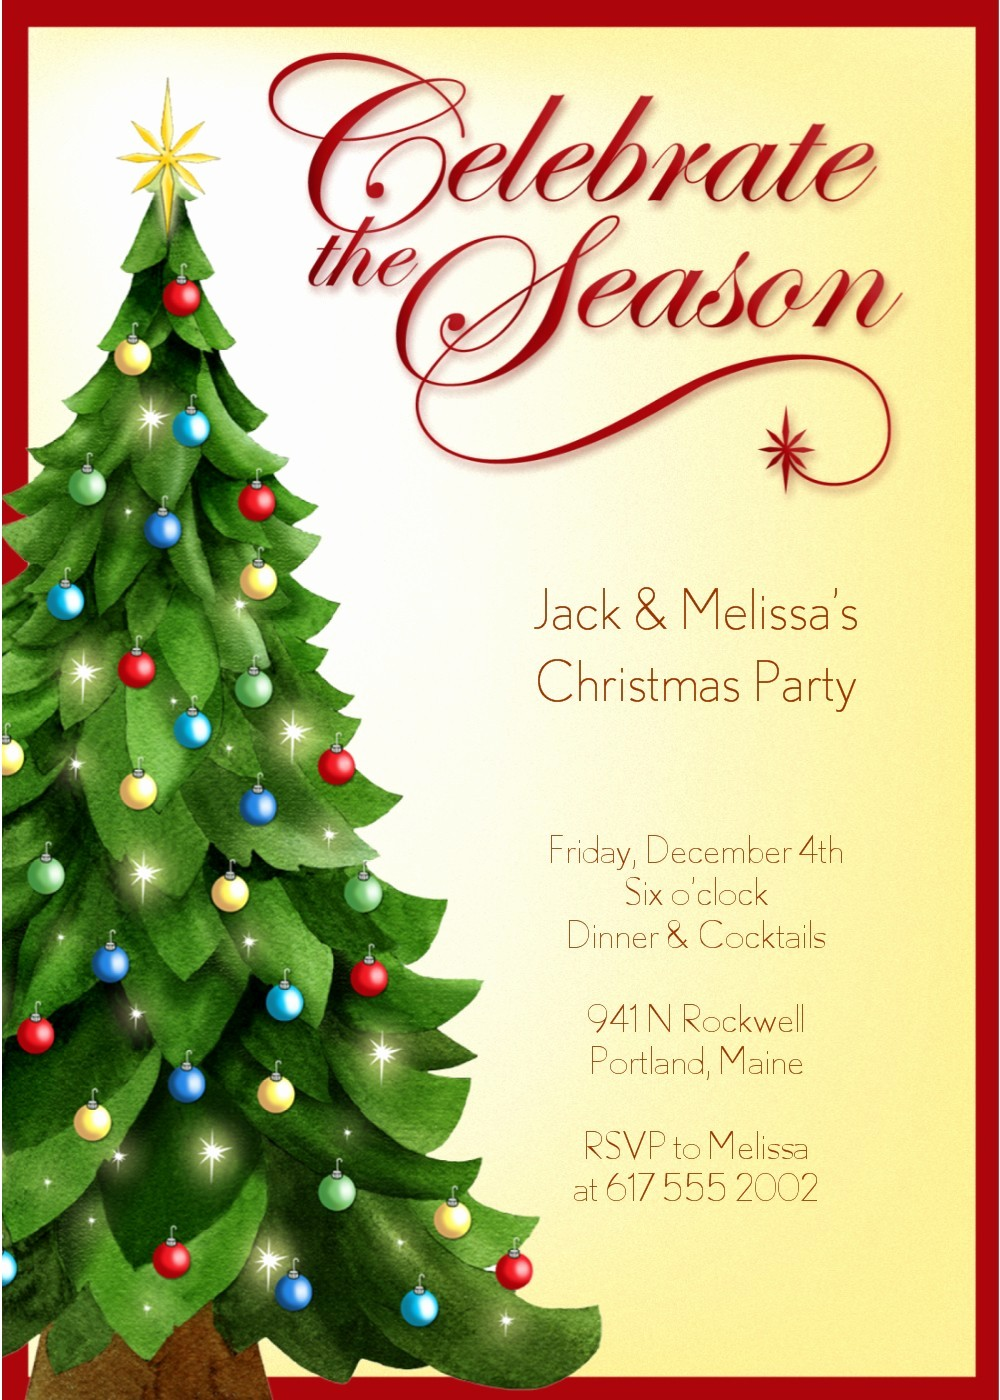 Party Invitation Templates Microsoft Word Elegant Christmas Party Invitation Templates Free Word